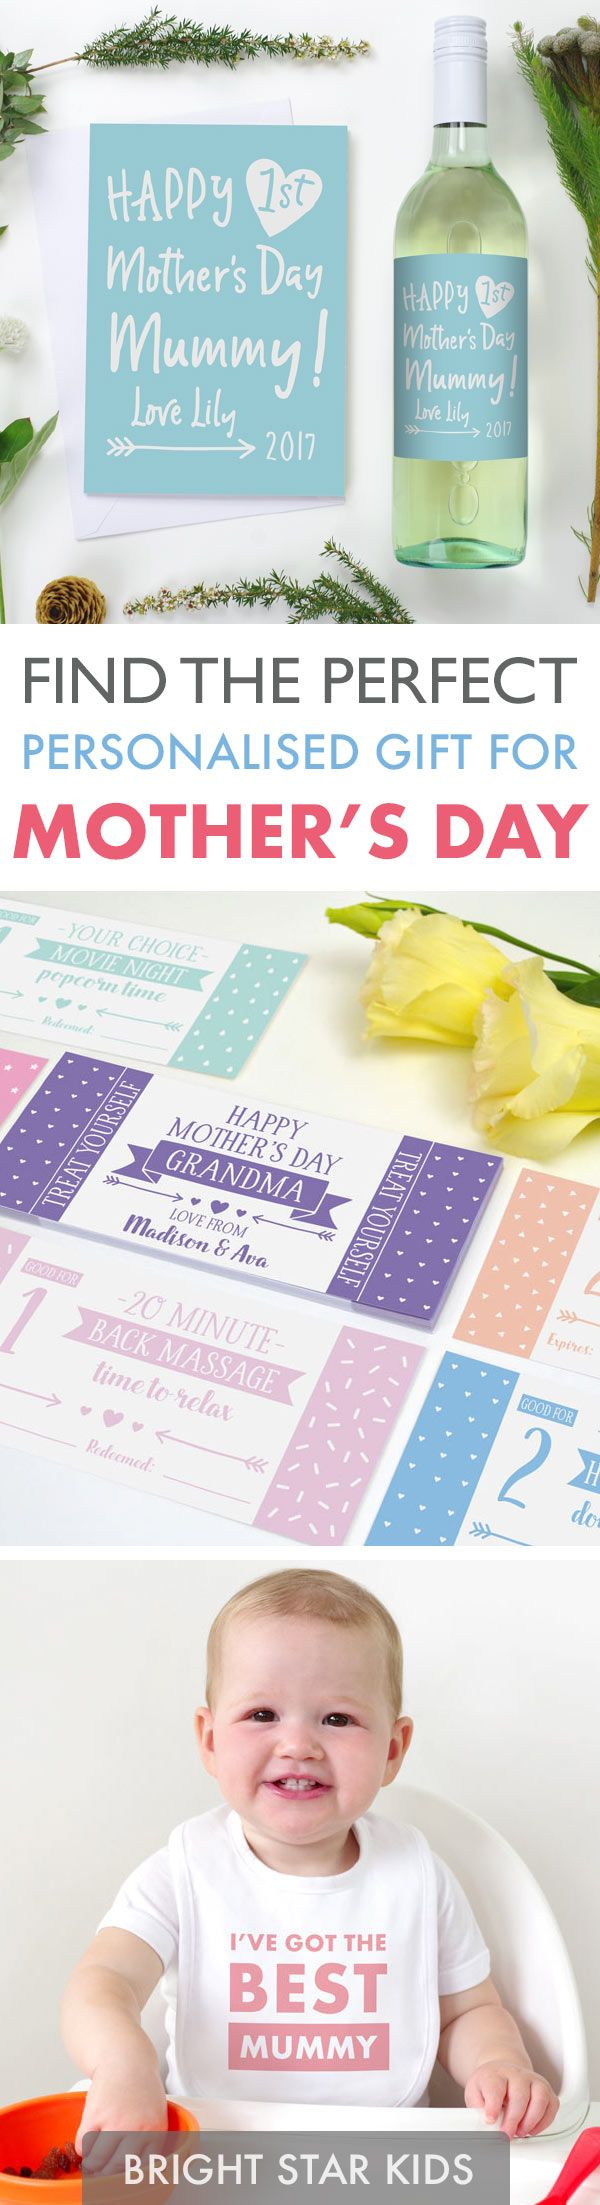 Mother's day gift ideas // personalised gifts